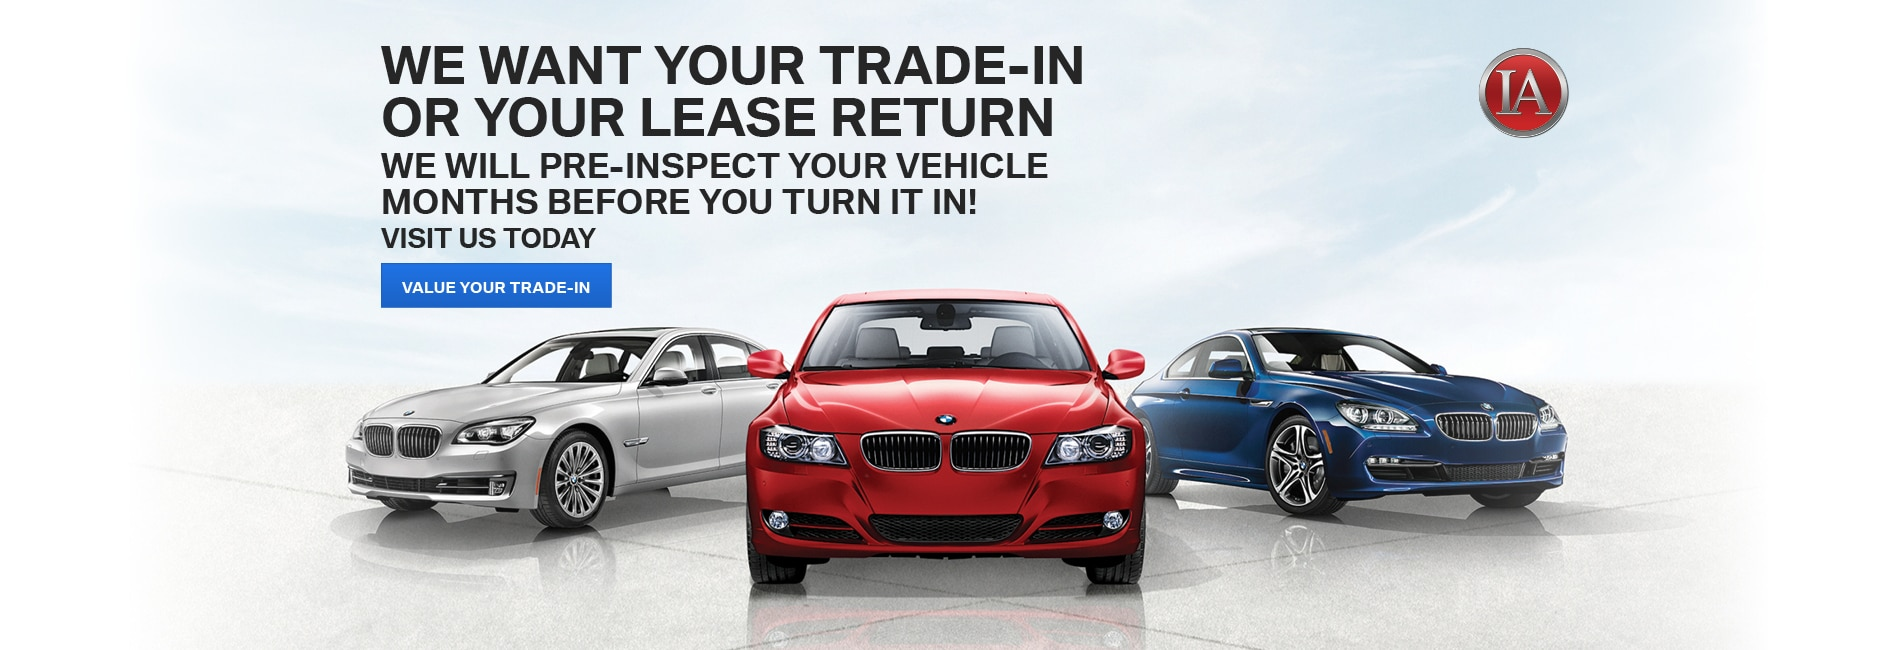 BMW Dealership Milwaukee WI New Used BMW Cars Service Parts - What is a dealer invoice rocco online store